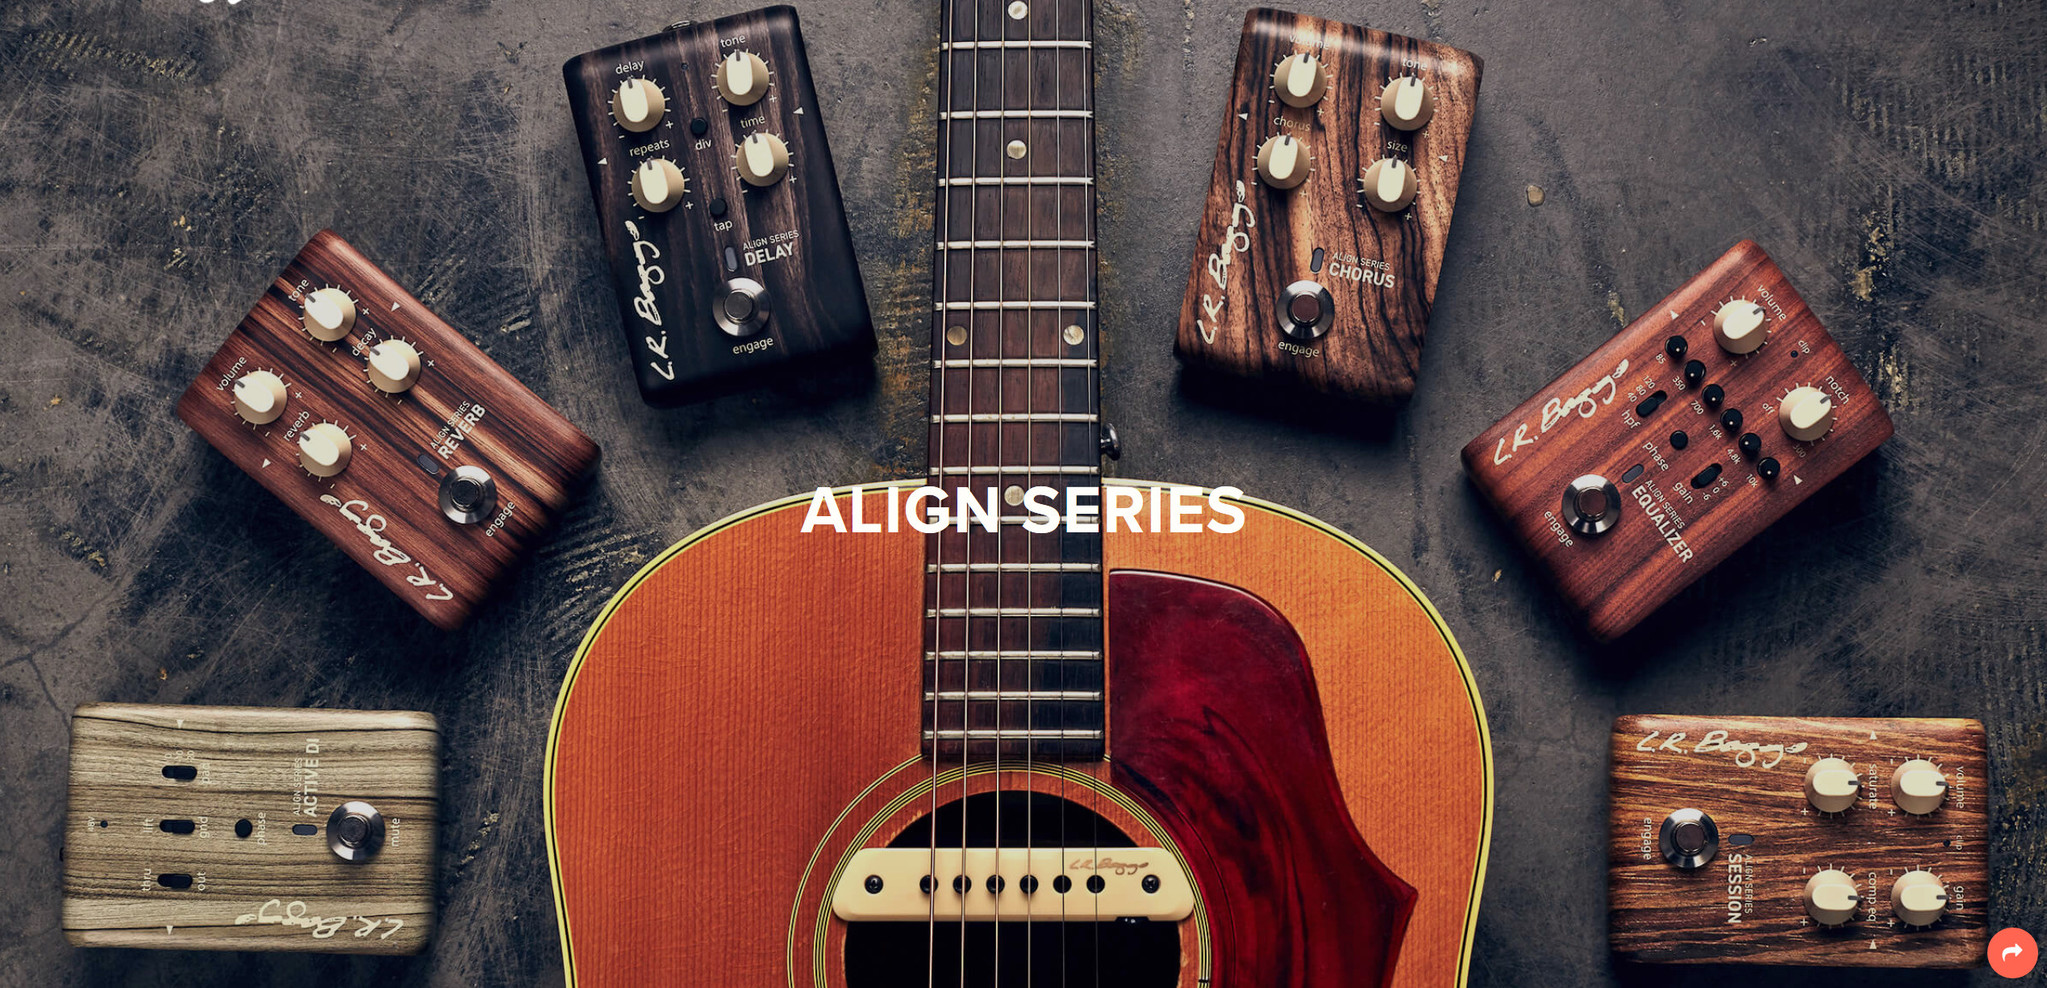 The LR Baggs Align Series | Acoustic Guitar Pedals